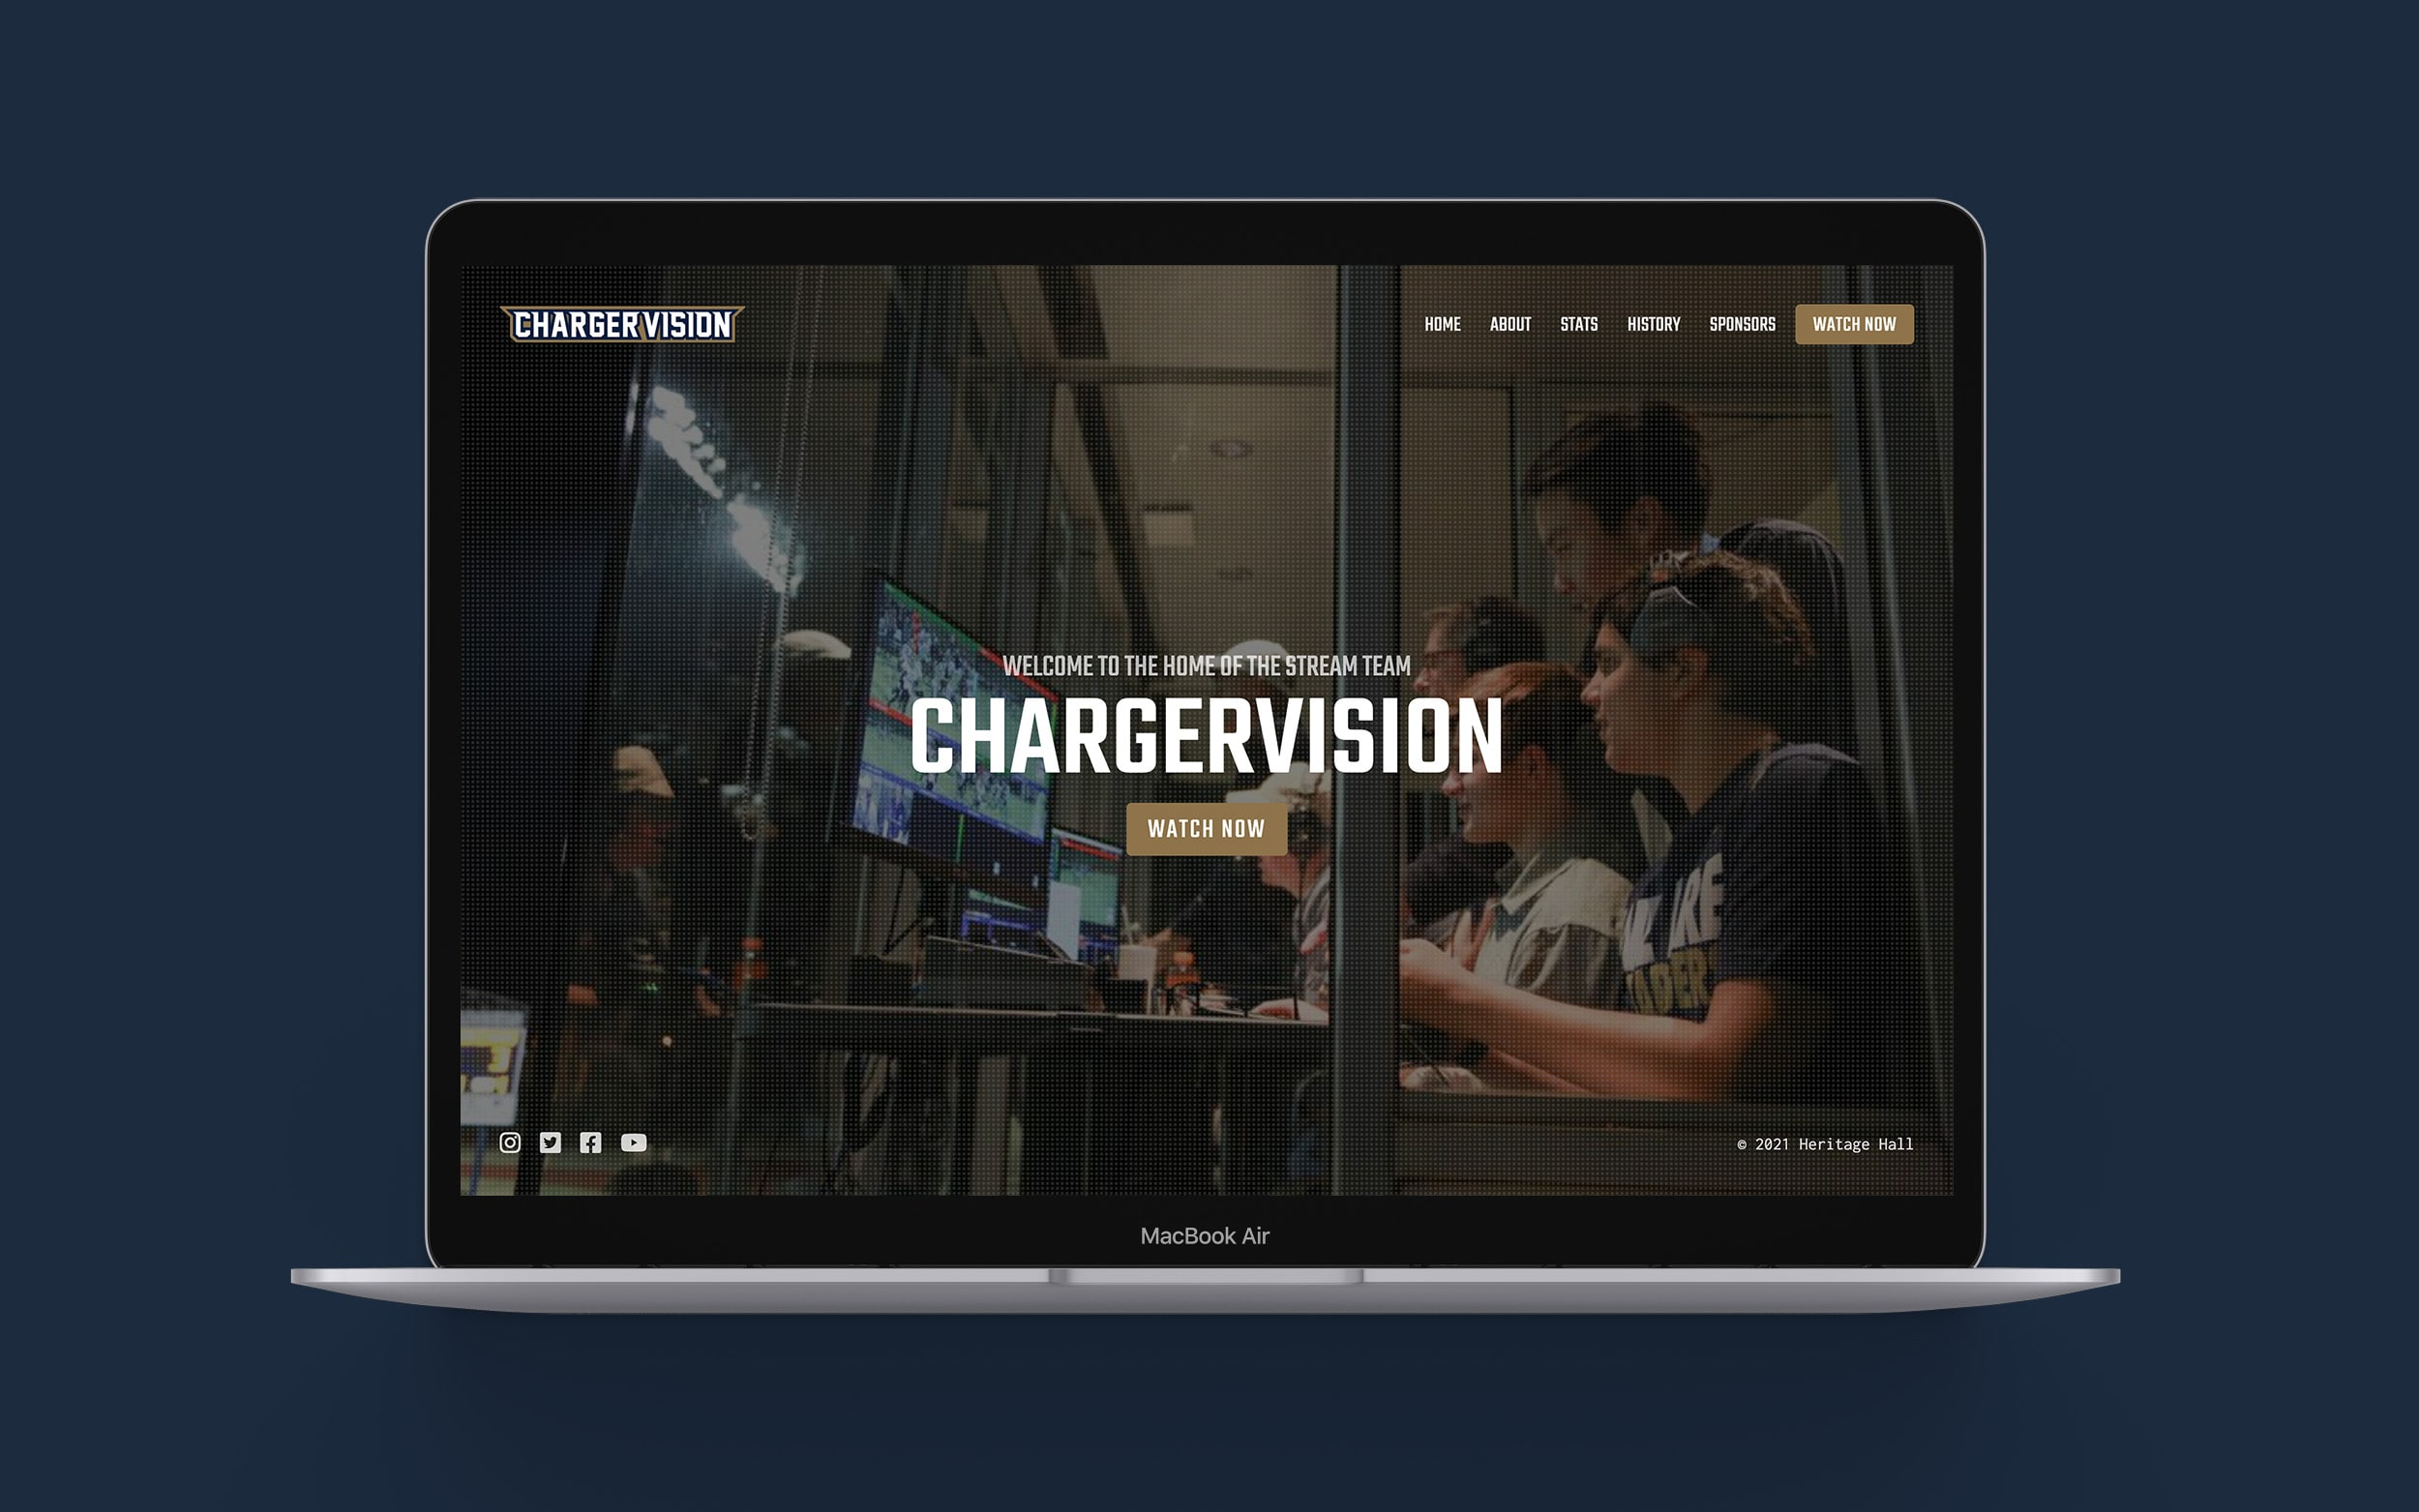 ChargerVision